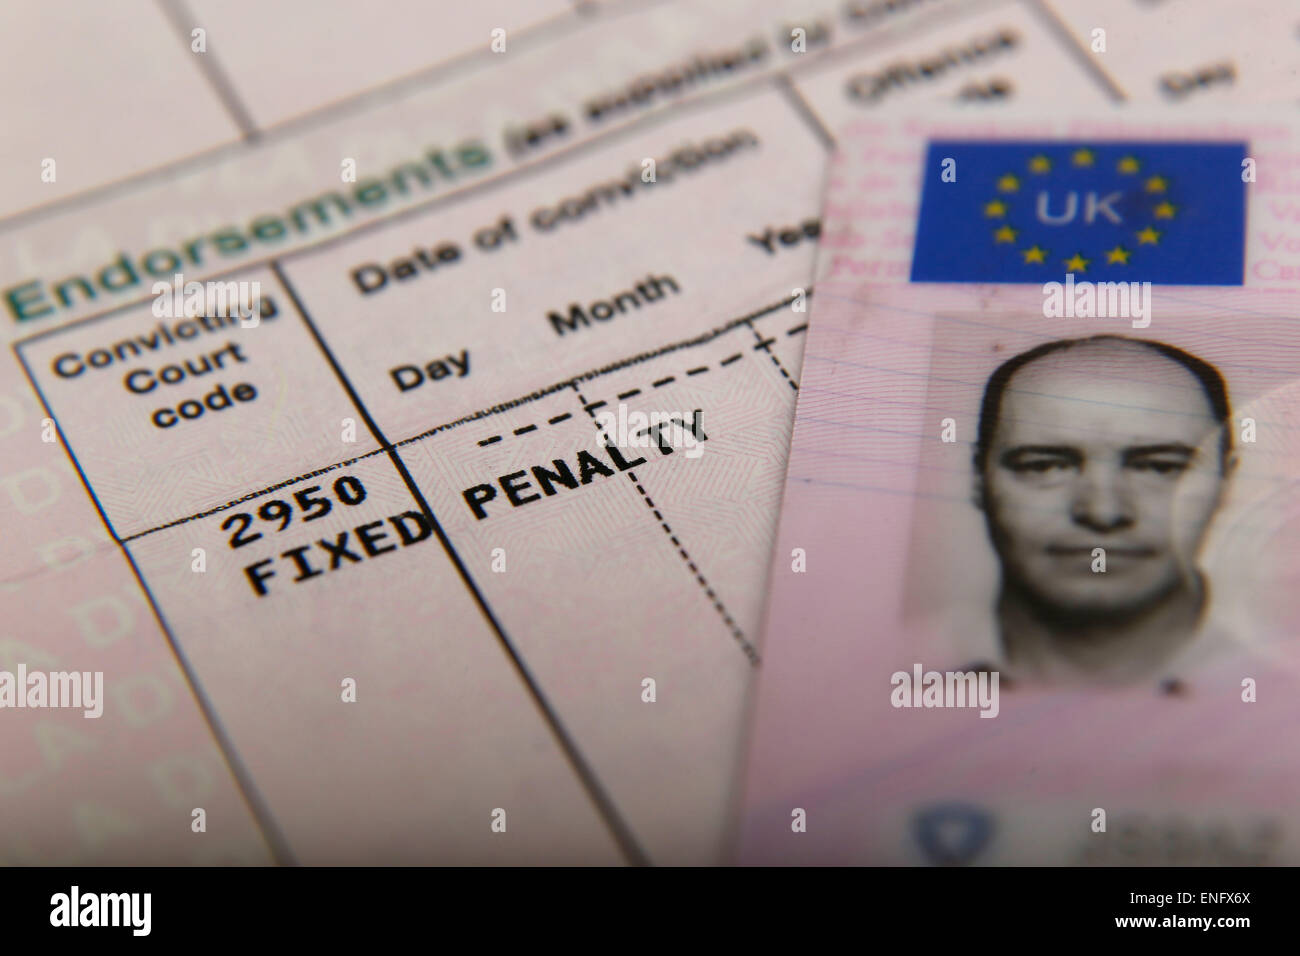 A United Kingdom Paper and Plastic Card Driving Licence - Stock Image